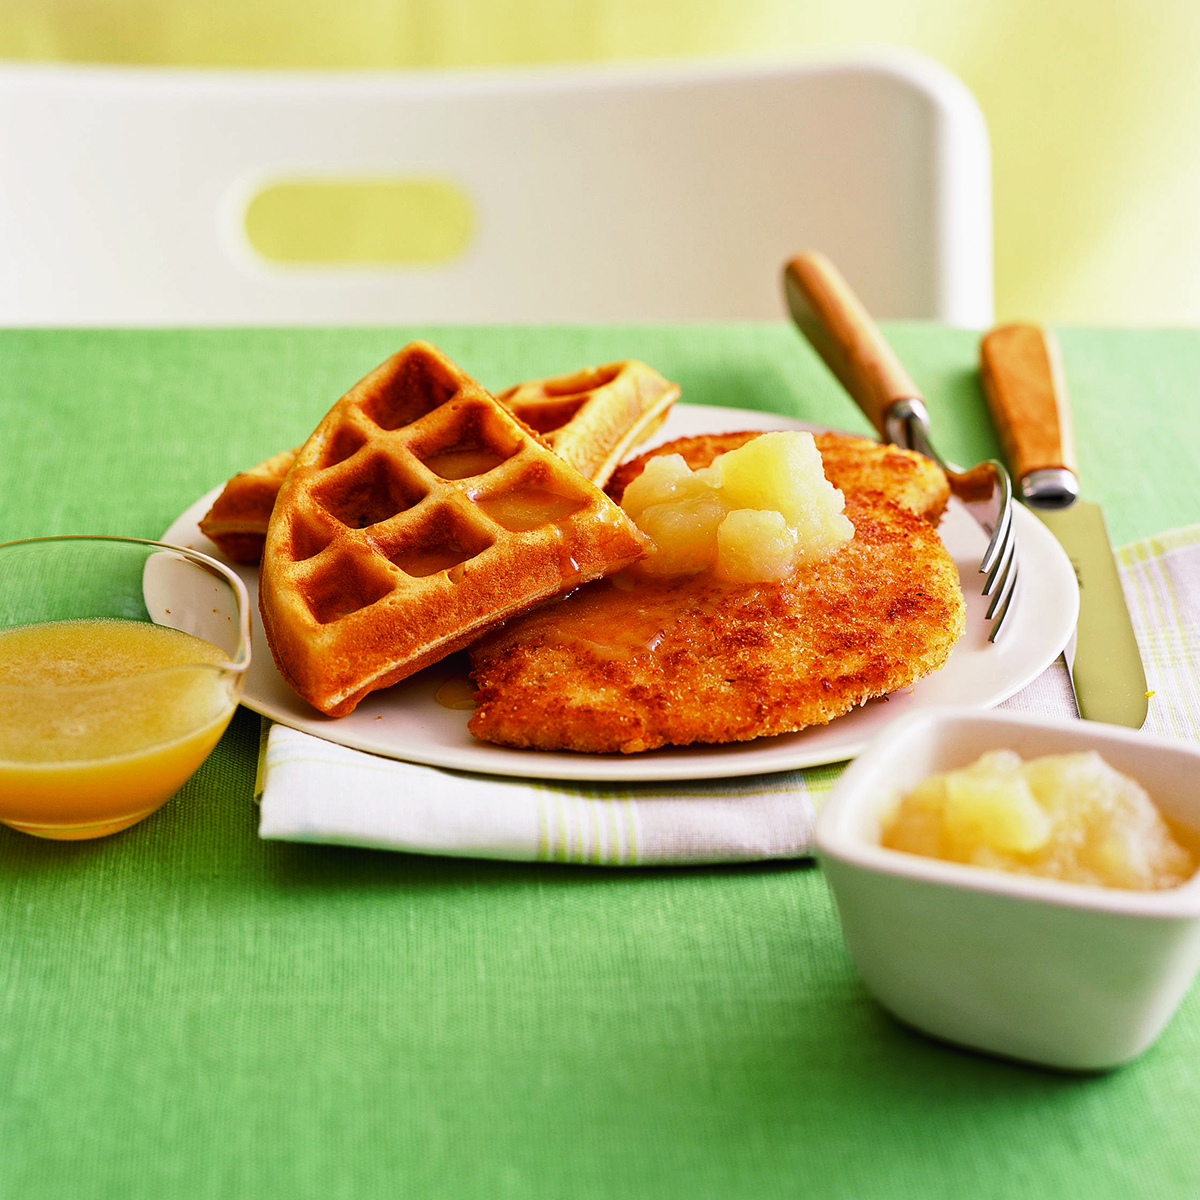 chicken and honey buttered waffles